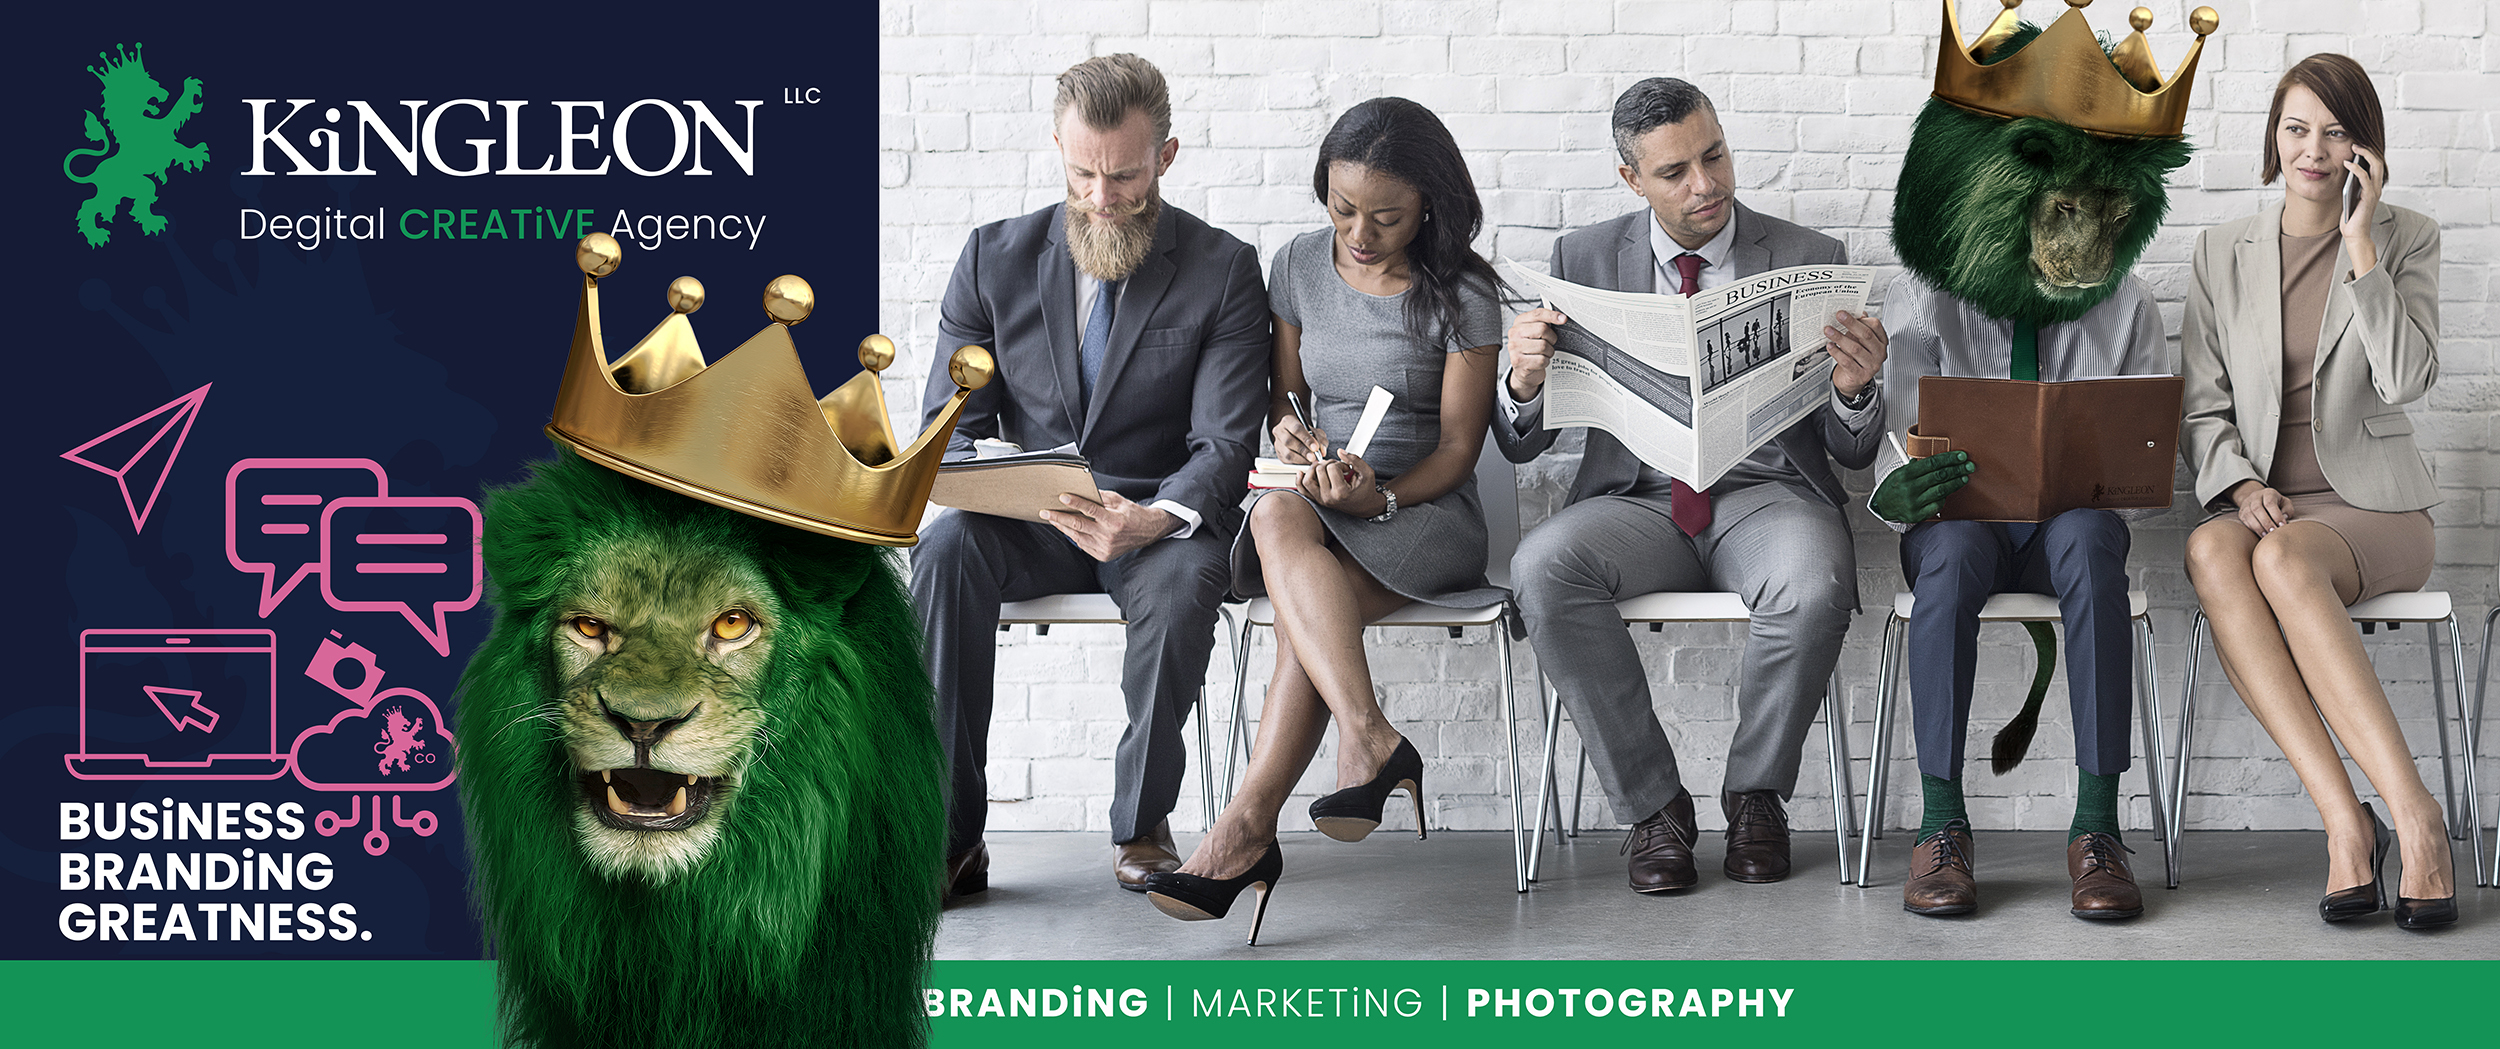 kingleon-digital-creative-agency-lion-business-Google